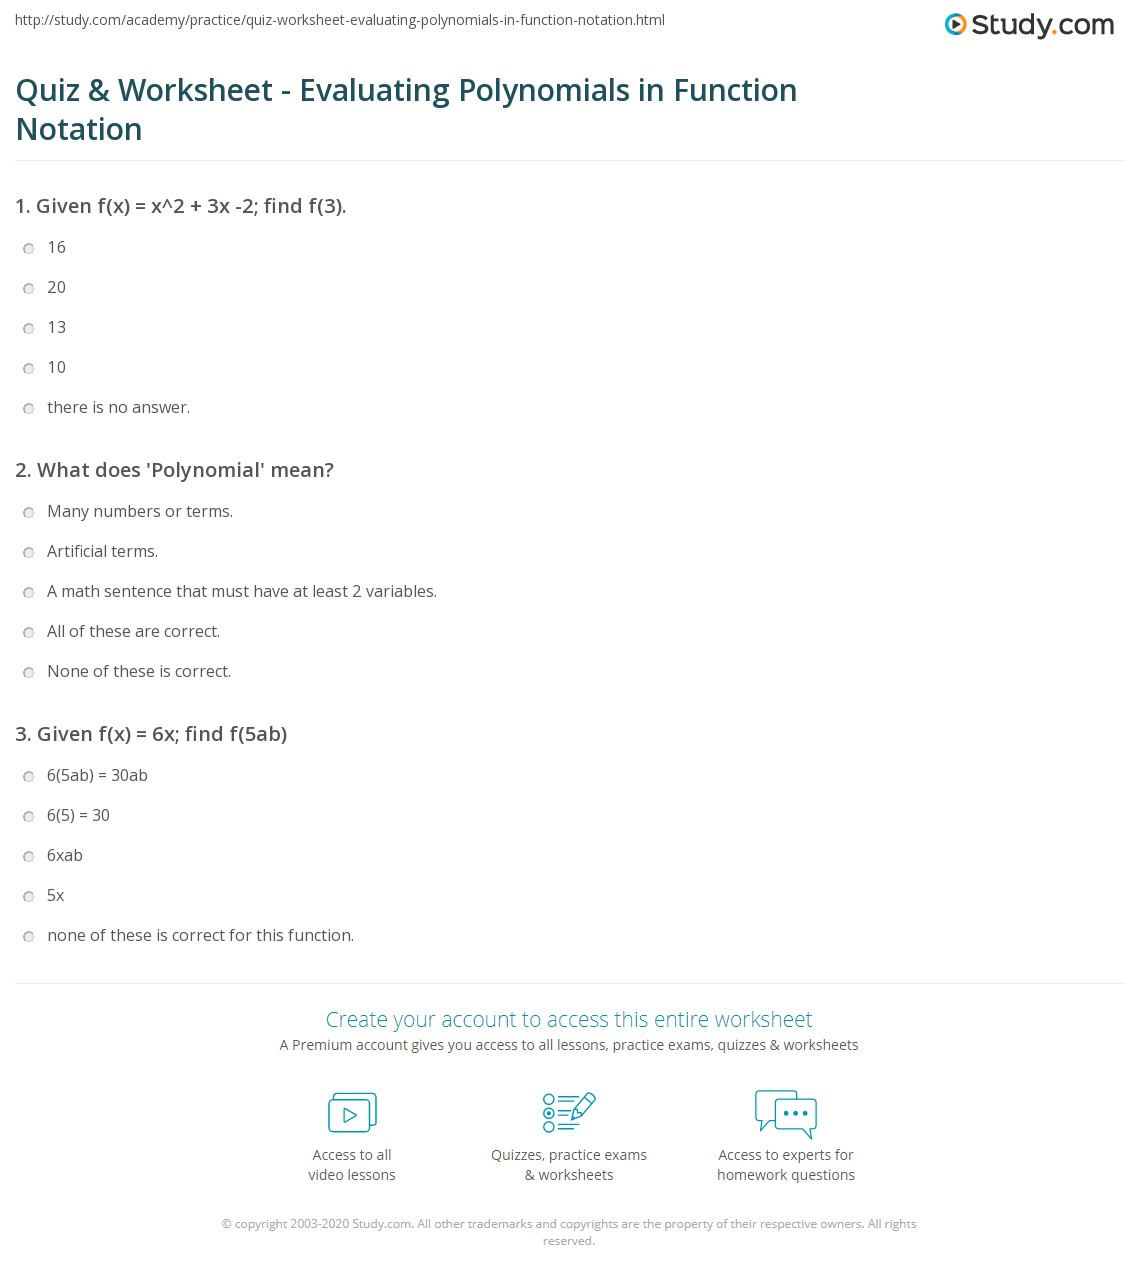 Worksheets Function Notation Worksheet With Answers quiz worksheet evaluating polynomials in function notation print how to evaluate a polynomial worksheet